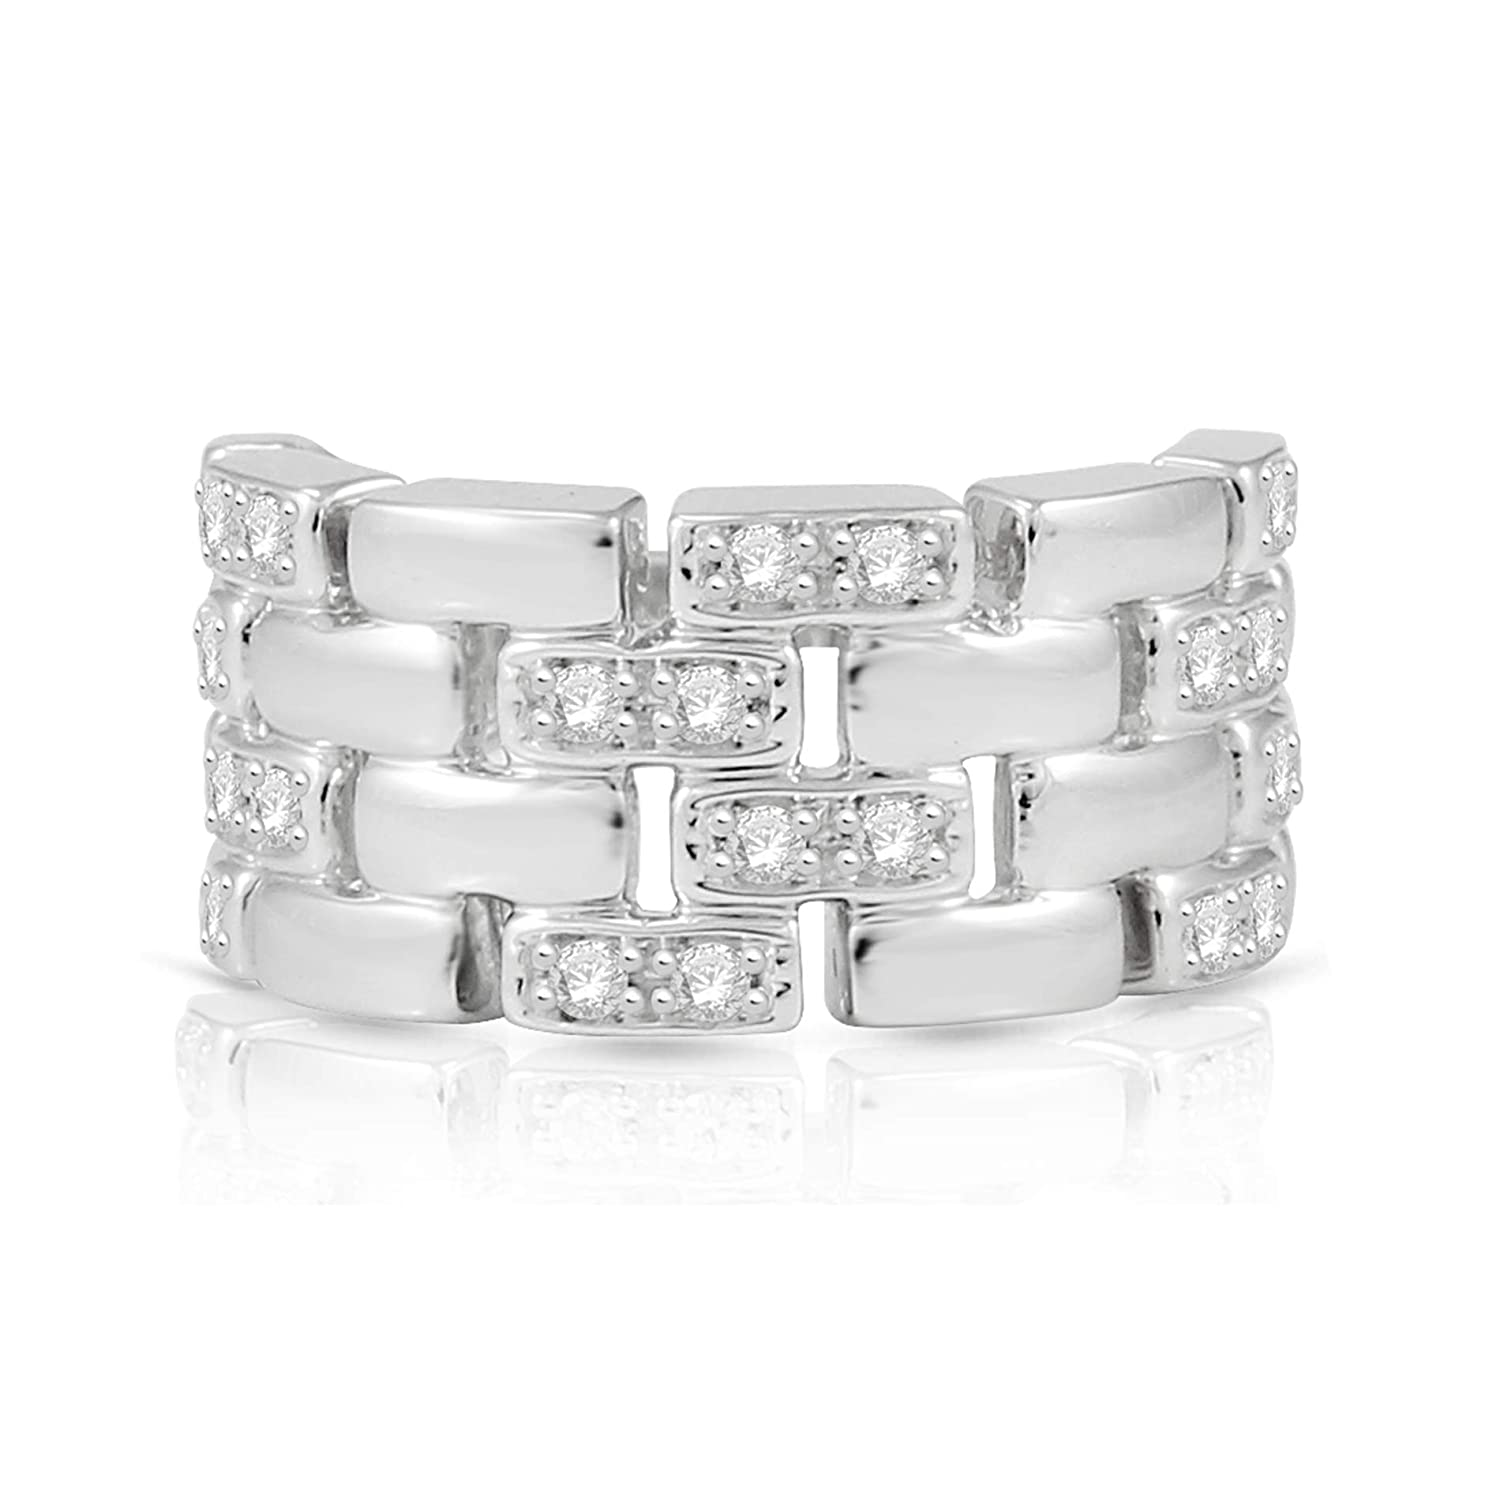 Amazon Natalia Drake Blowout Sale 14ctw Diamond Chain Link Anniversary Wedding Band In Sterling Silver Jewelry: Link Diamond Wedding Band At Reisefeber.org